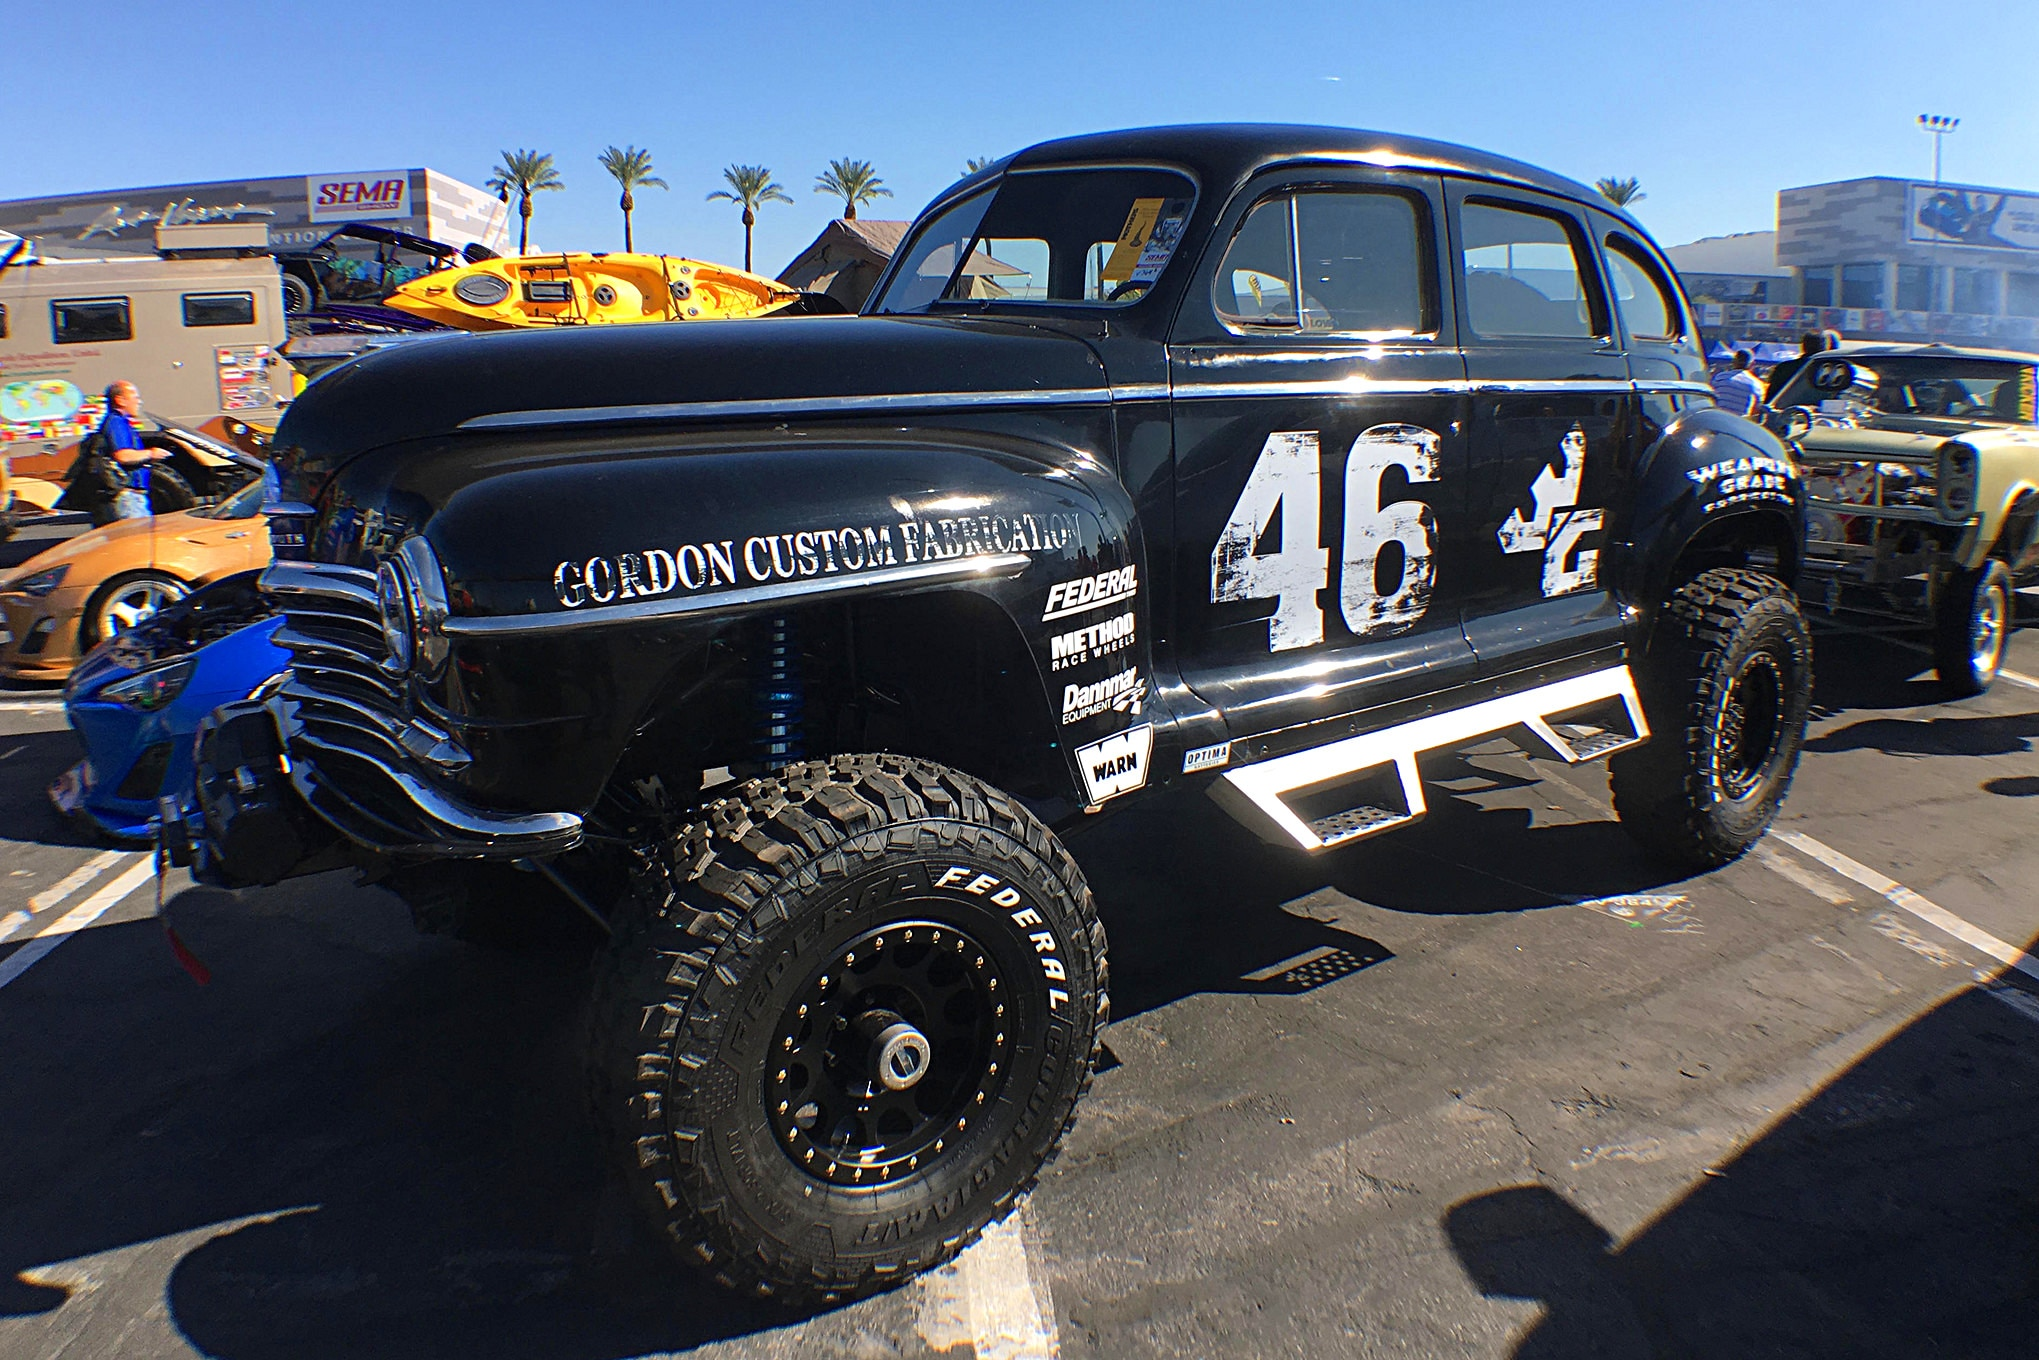 One of the more interesting off-road vehicles was this '46 Plymouth Deluxe.